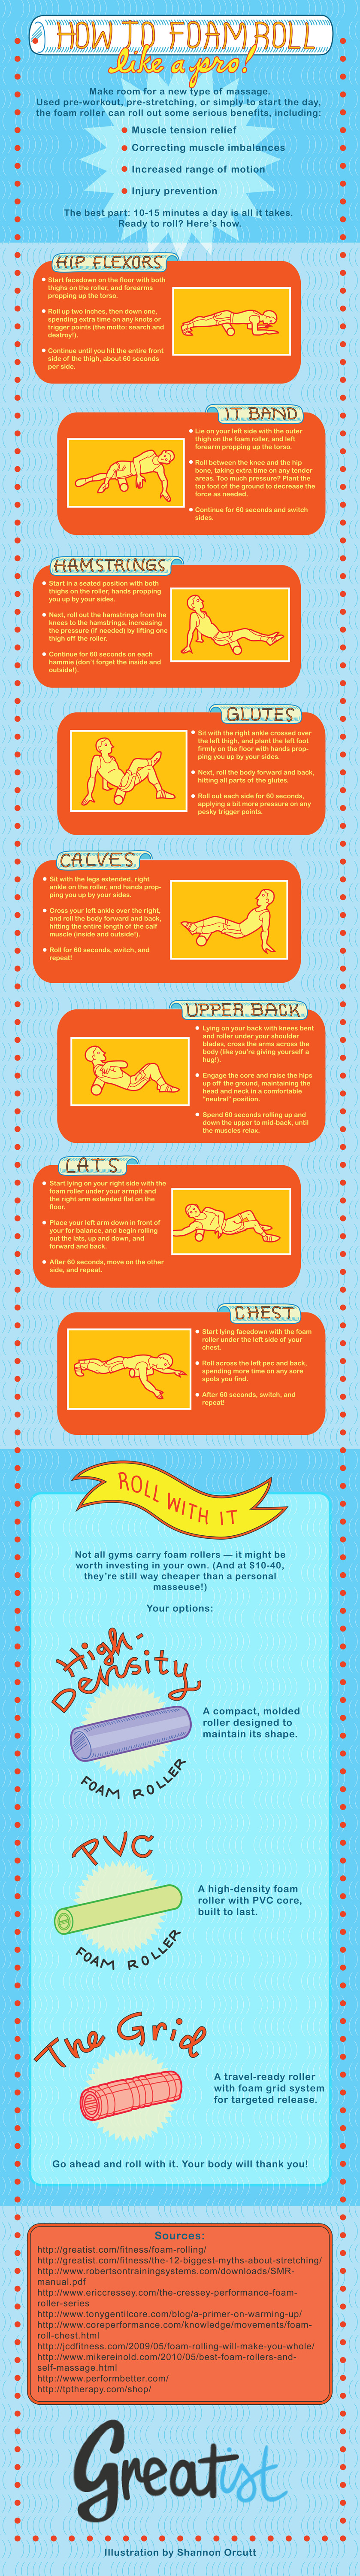 How Foam Rollers Can Help You in Your Fitness Journey - Infographic